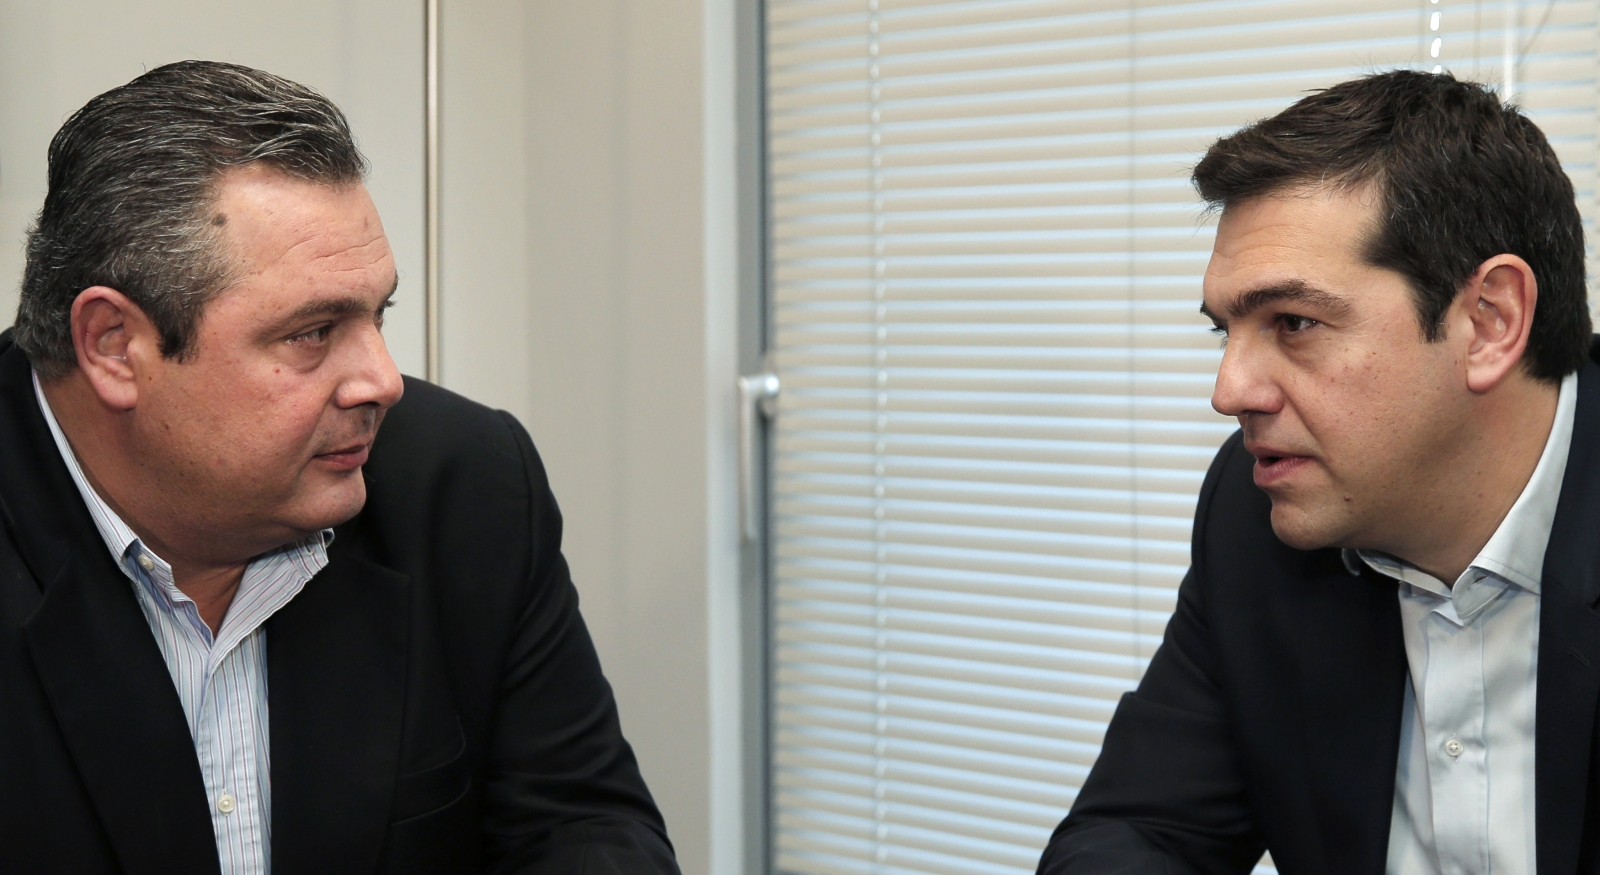 Head of radical leftist Syriza party Alexis Tsipras (R) meets with leader of right-wing, anti-bailout Independent Greeks party Panos Kammenos